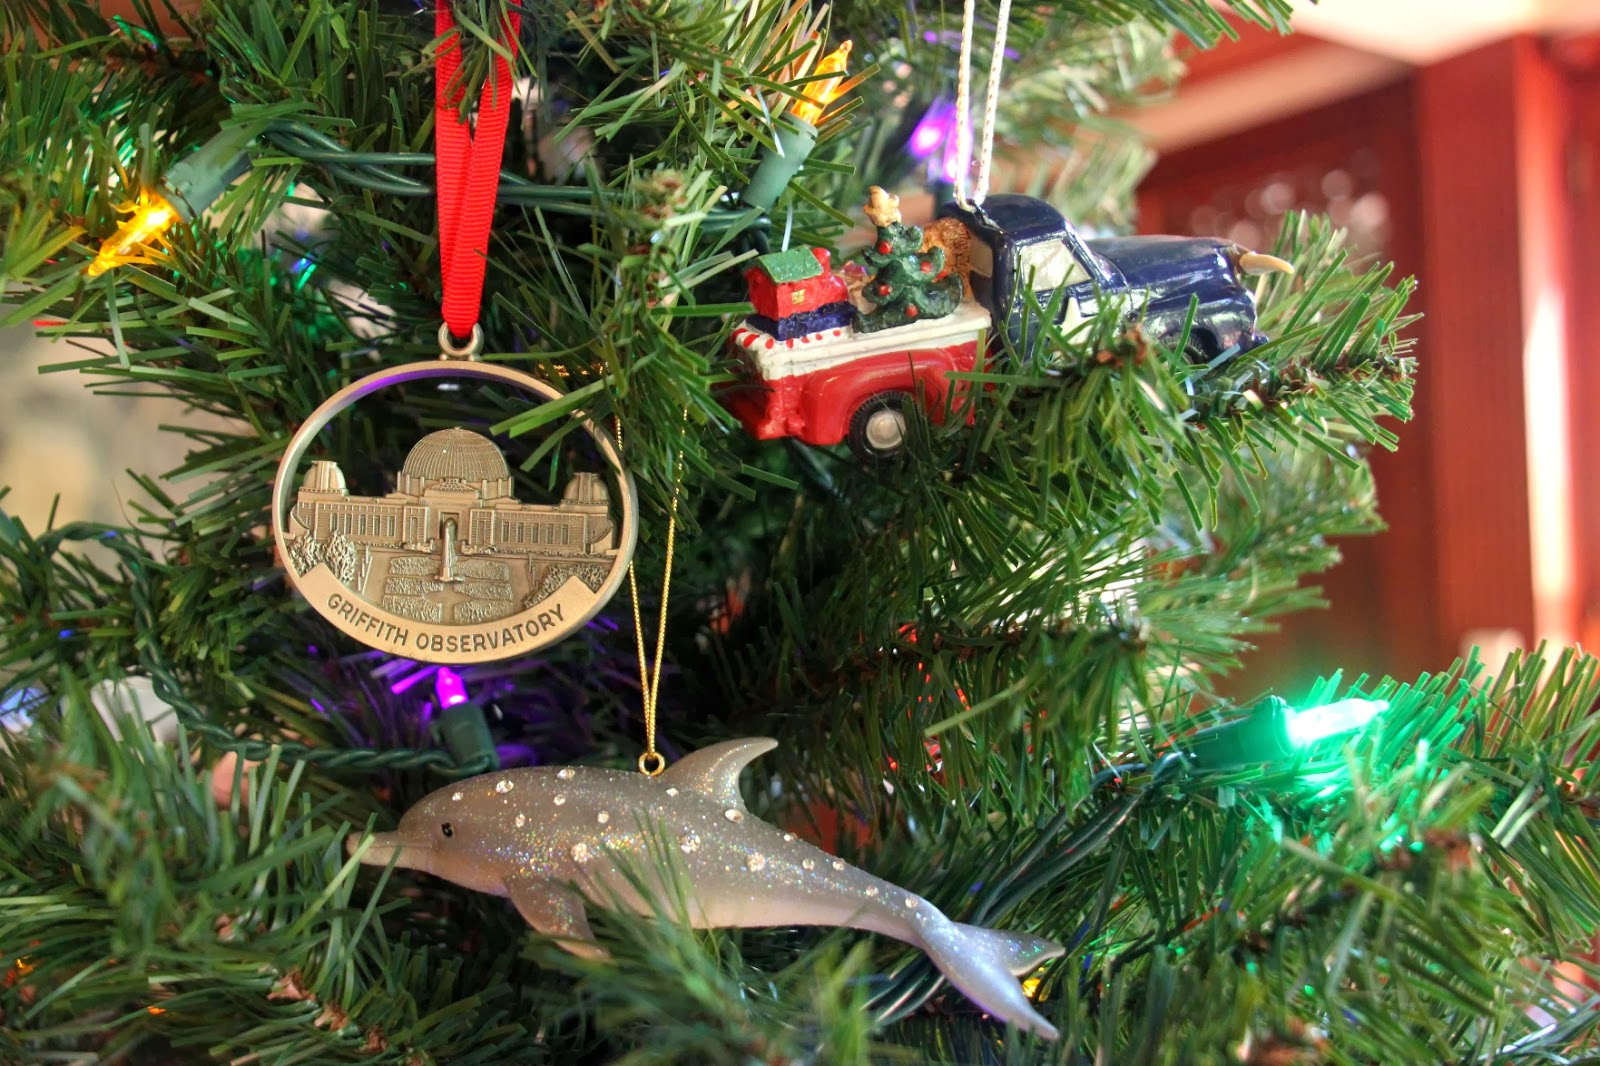 THE Eunice Burns: Our Married Life in Ornaments